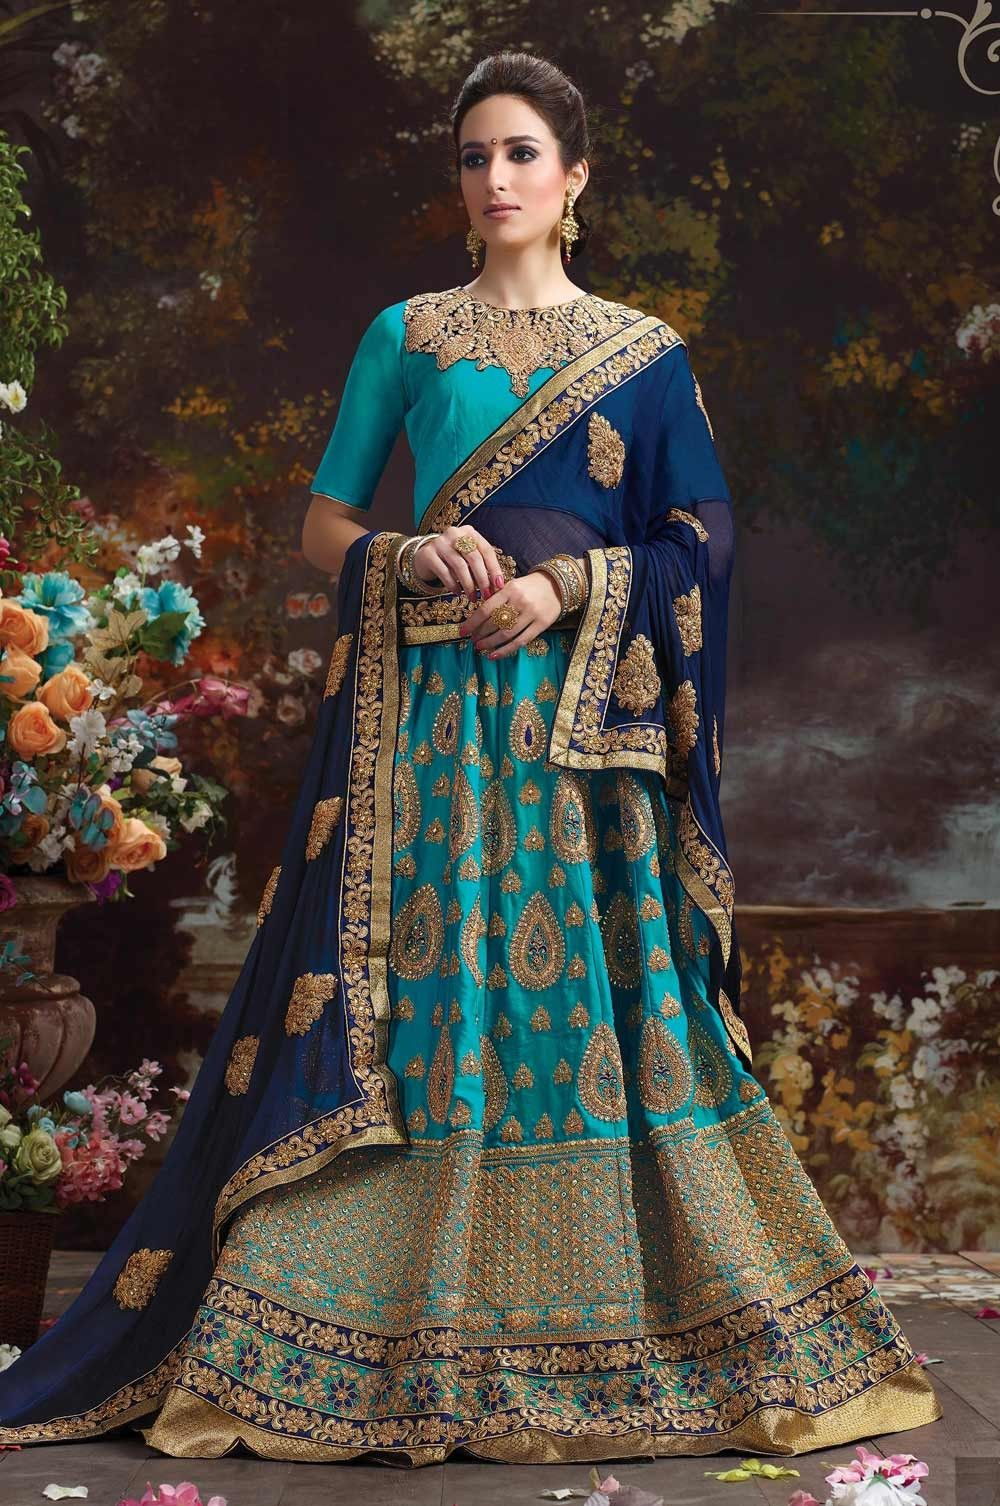 965082626d Turquoise wedding reception wear Indian latest lehenga choli with contast  blue dupatta